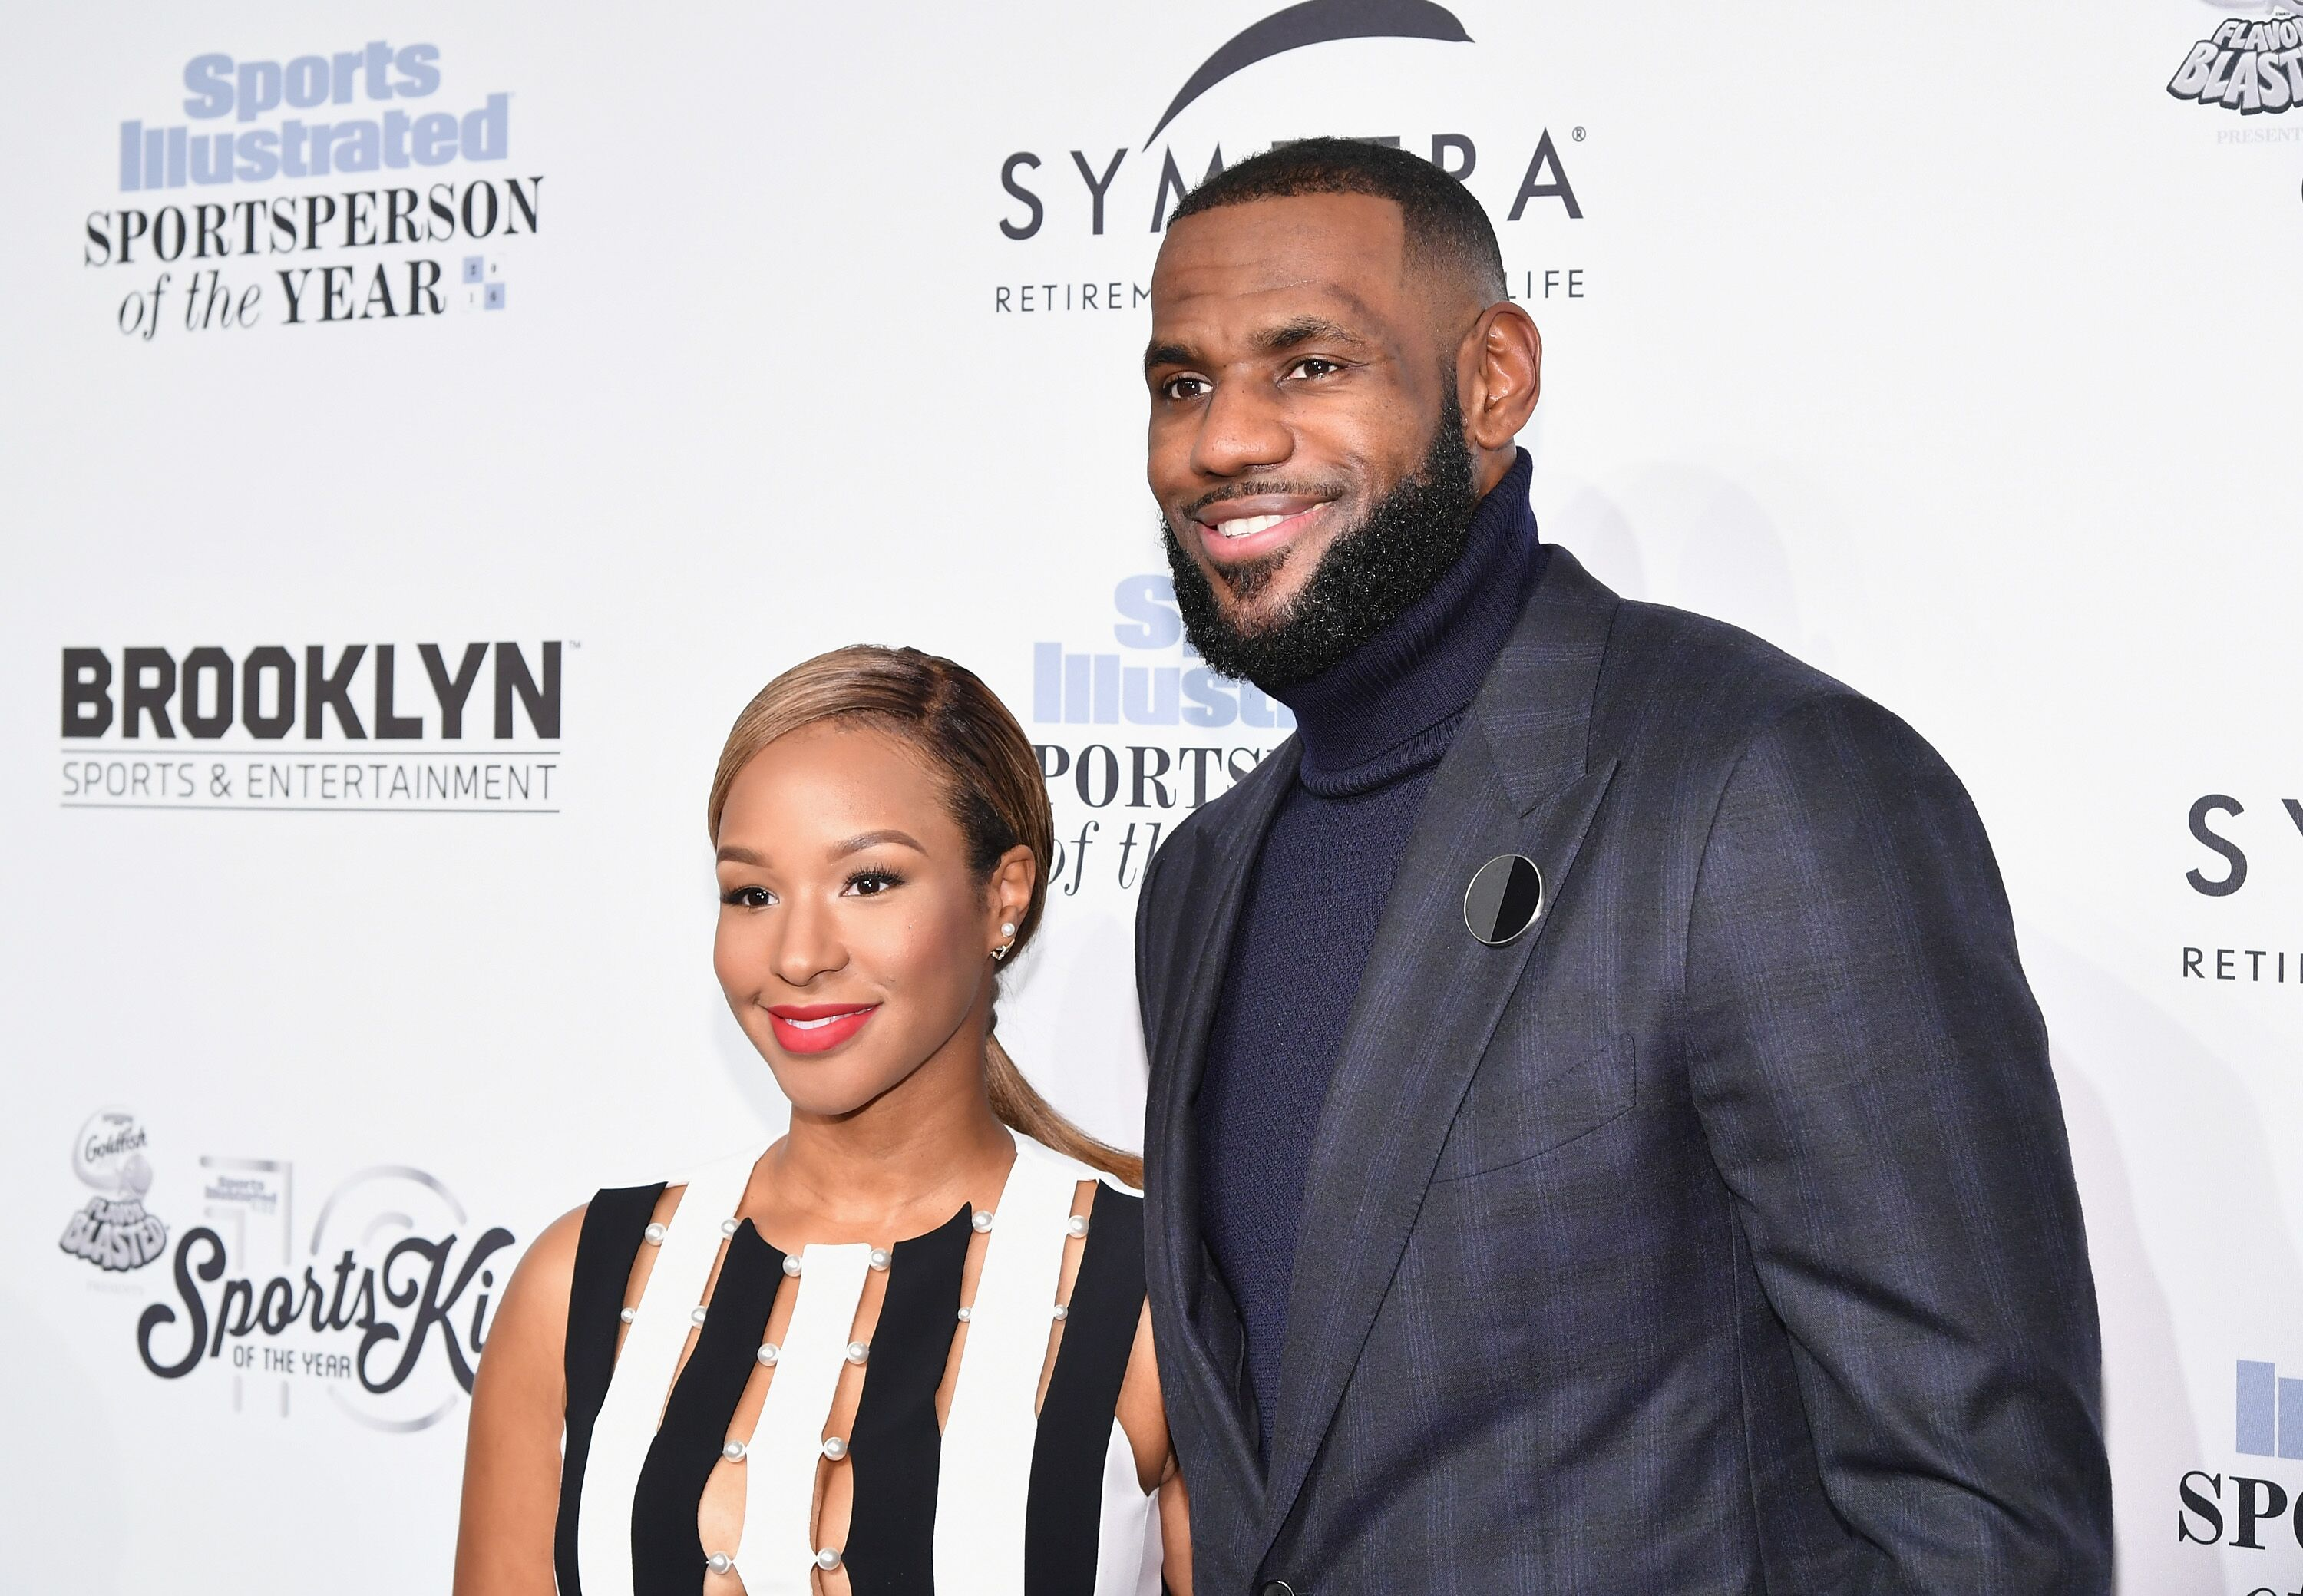 Savannah and LeBron James at the Sports Illustrated Sportsperson on the Year Awards/ Source: Getty Images